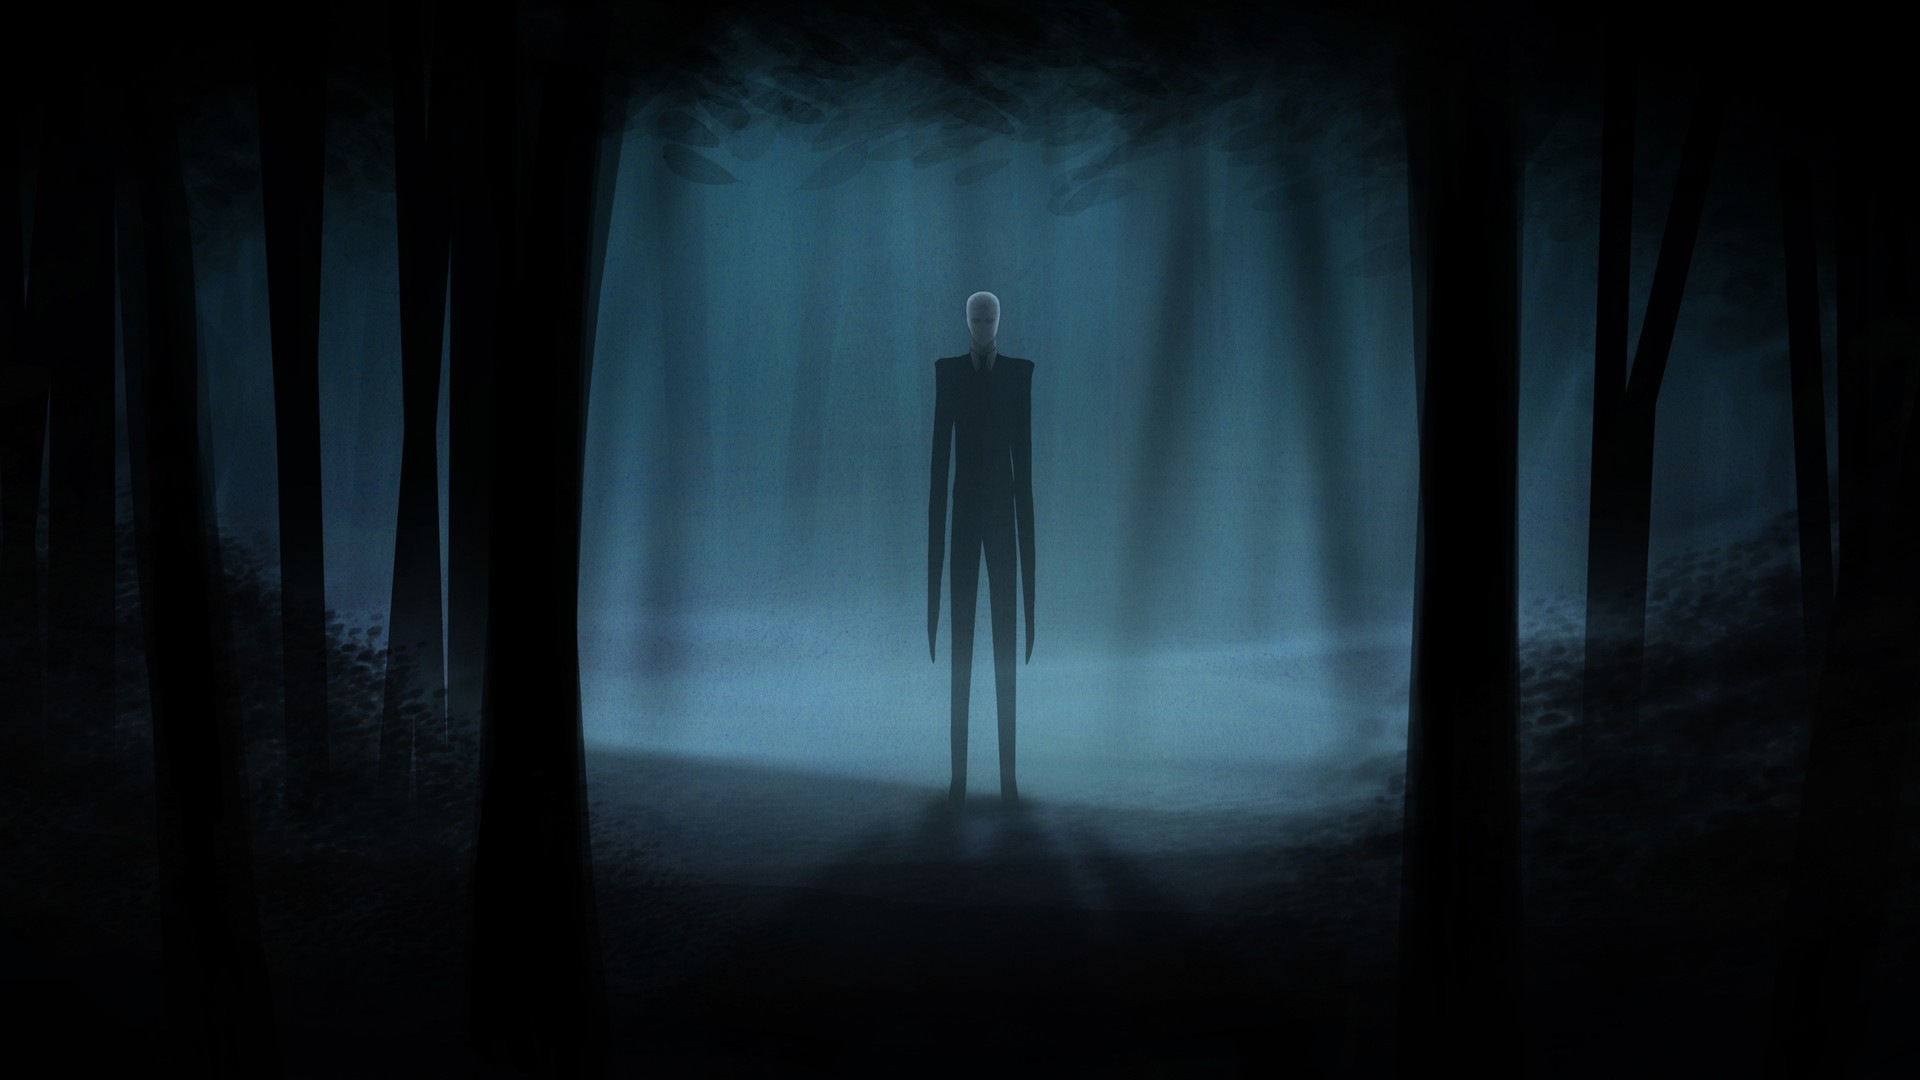 Nifty Slender Man Creepy Videogames Horror Trees Forestwallpaper Scary Forest Wallpaper Green Forest Wallpaper Forest Wallpaper Iphone 6 houzz 01 Dark Forest Wallpaper